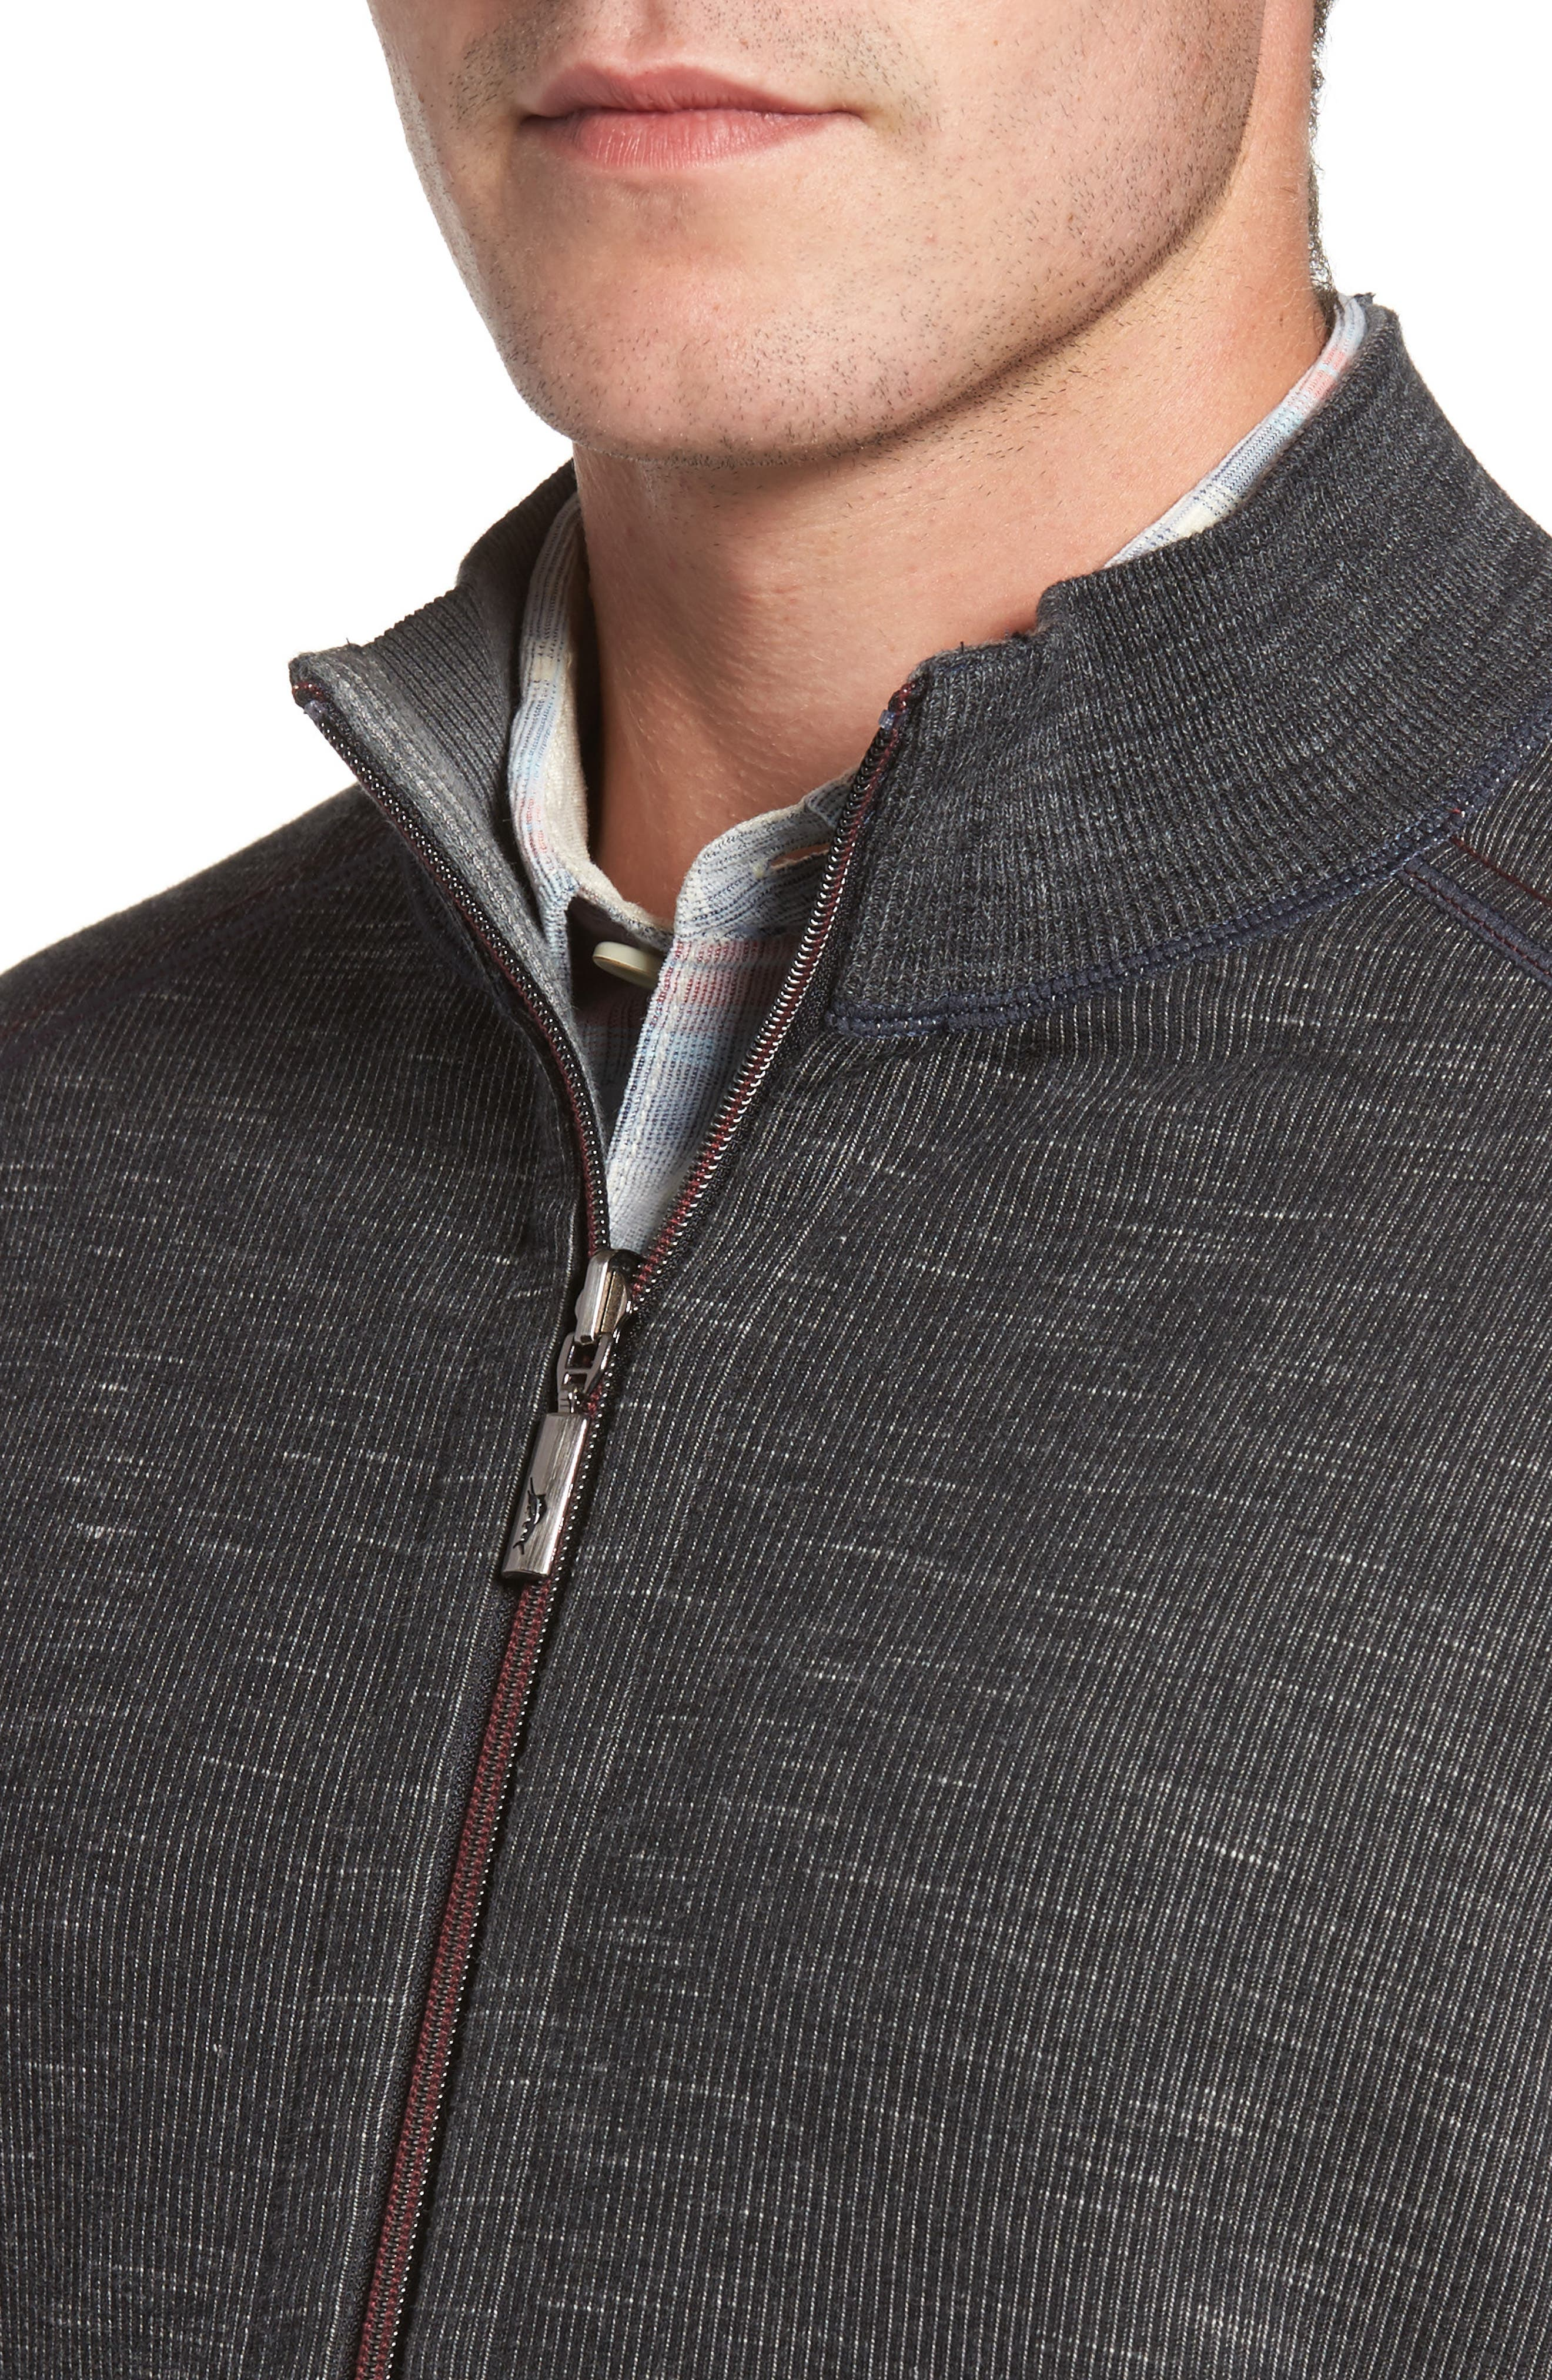 Flipsider Reversible Jacket,                             Alternate thumbnail 4, color,                             002